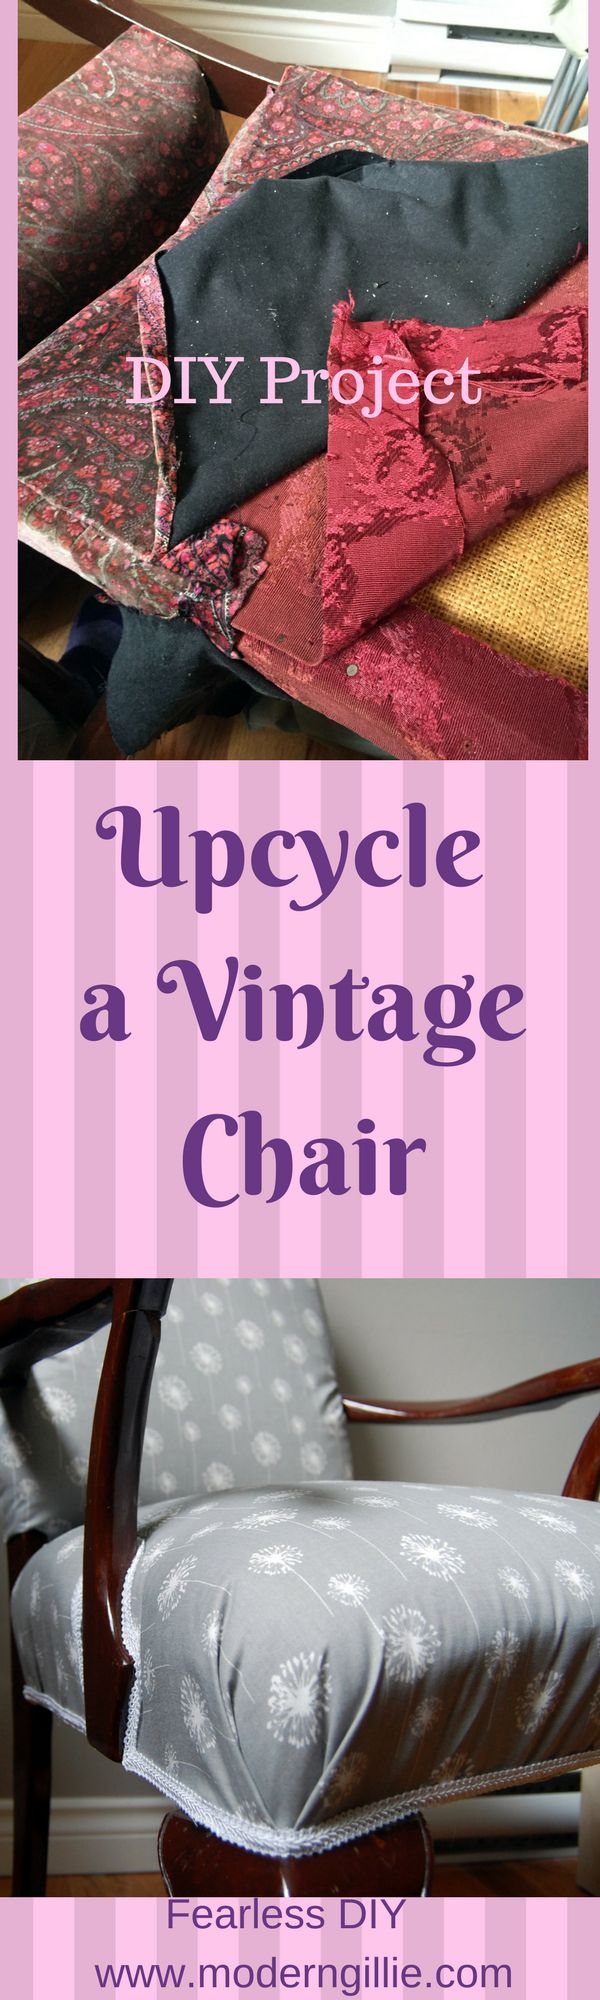 Reupholster a vintage chair, school of Youtube style. My first effort at upholstery with a chair thrifted from the garbage. restore vintage chair, reupholster vintage chair, reuse furniture